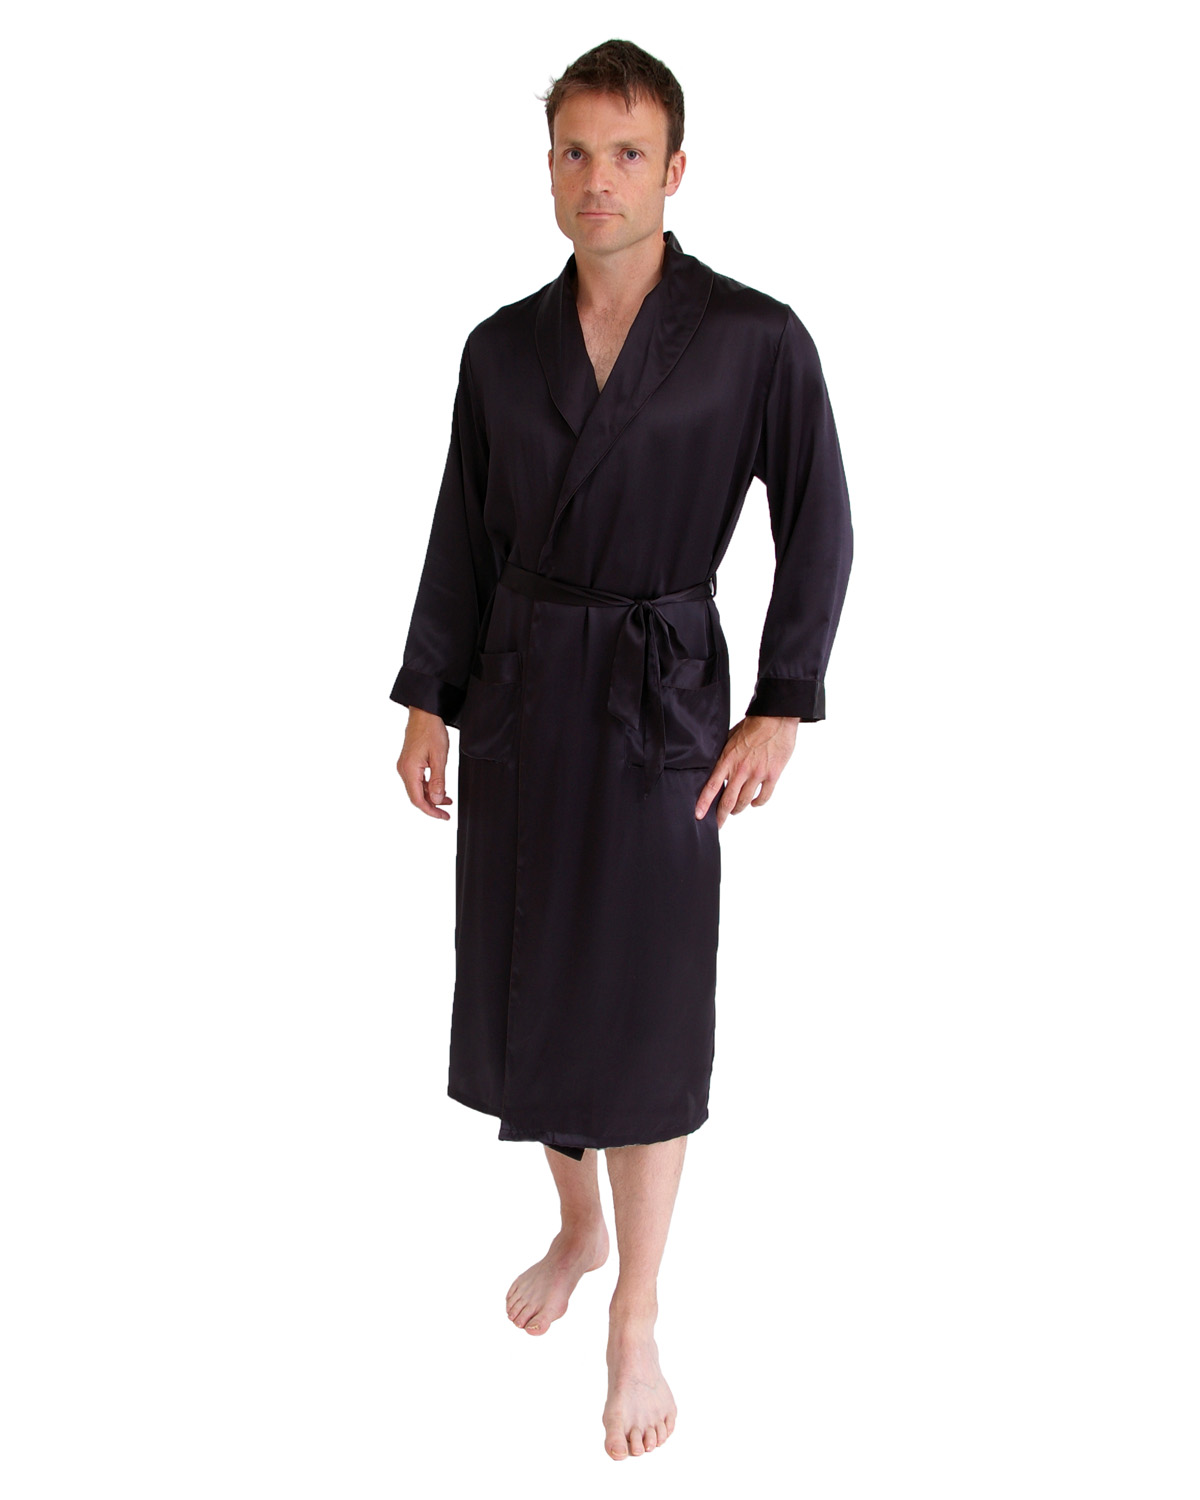 Long silk dressing gown - Clothing and Accessories - Clothing - Mens ...